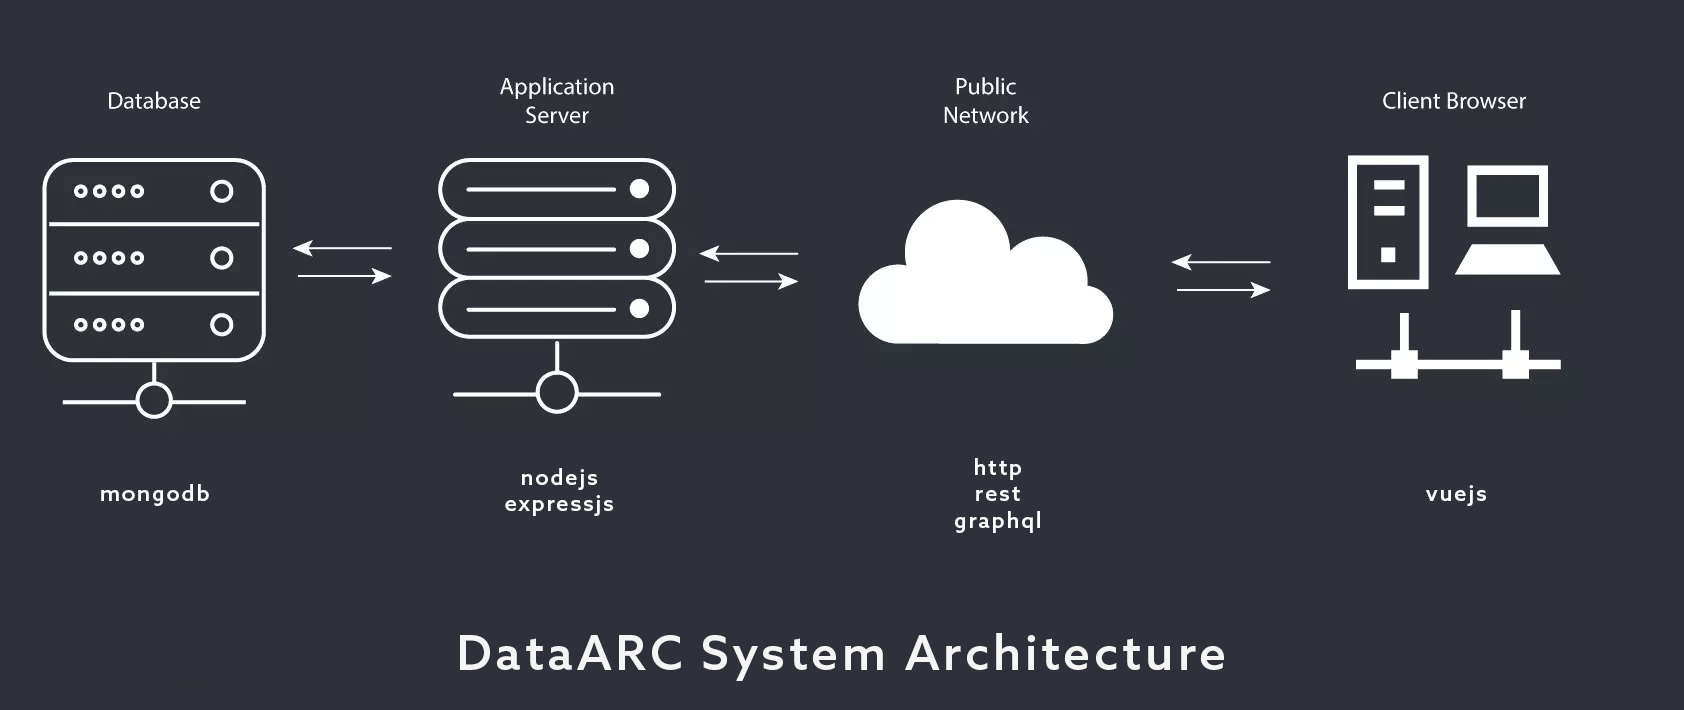 Search Tool Architecture Overview